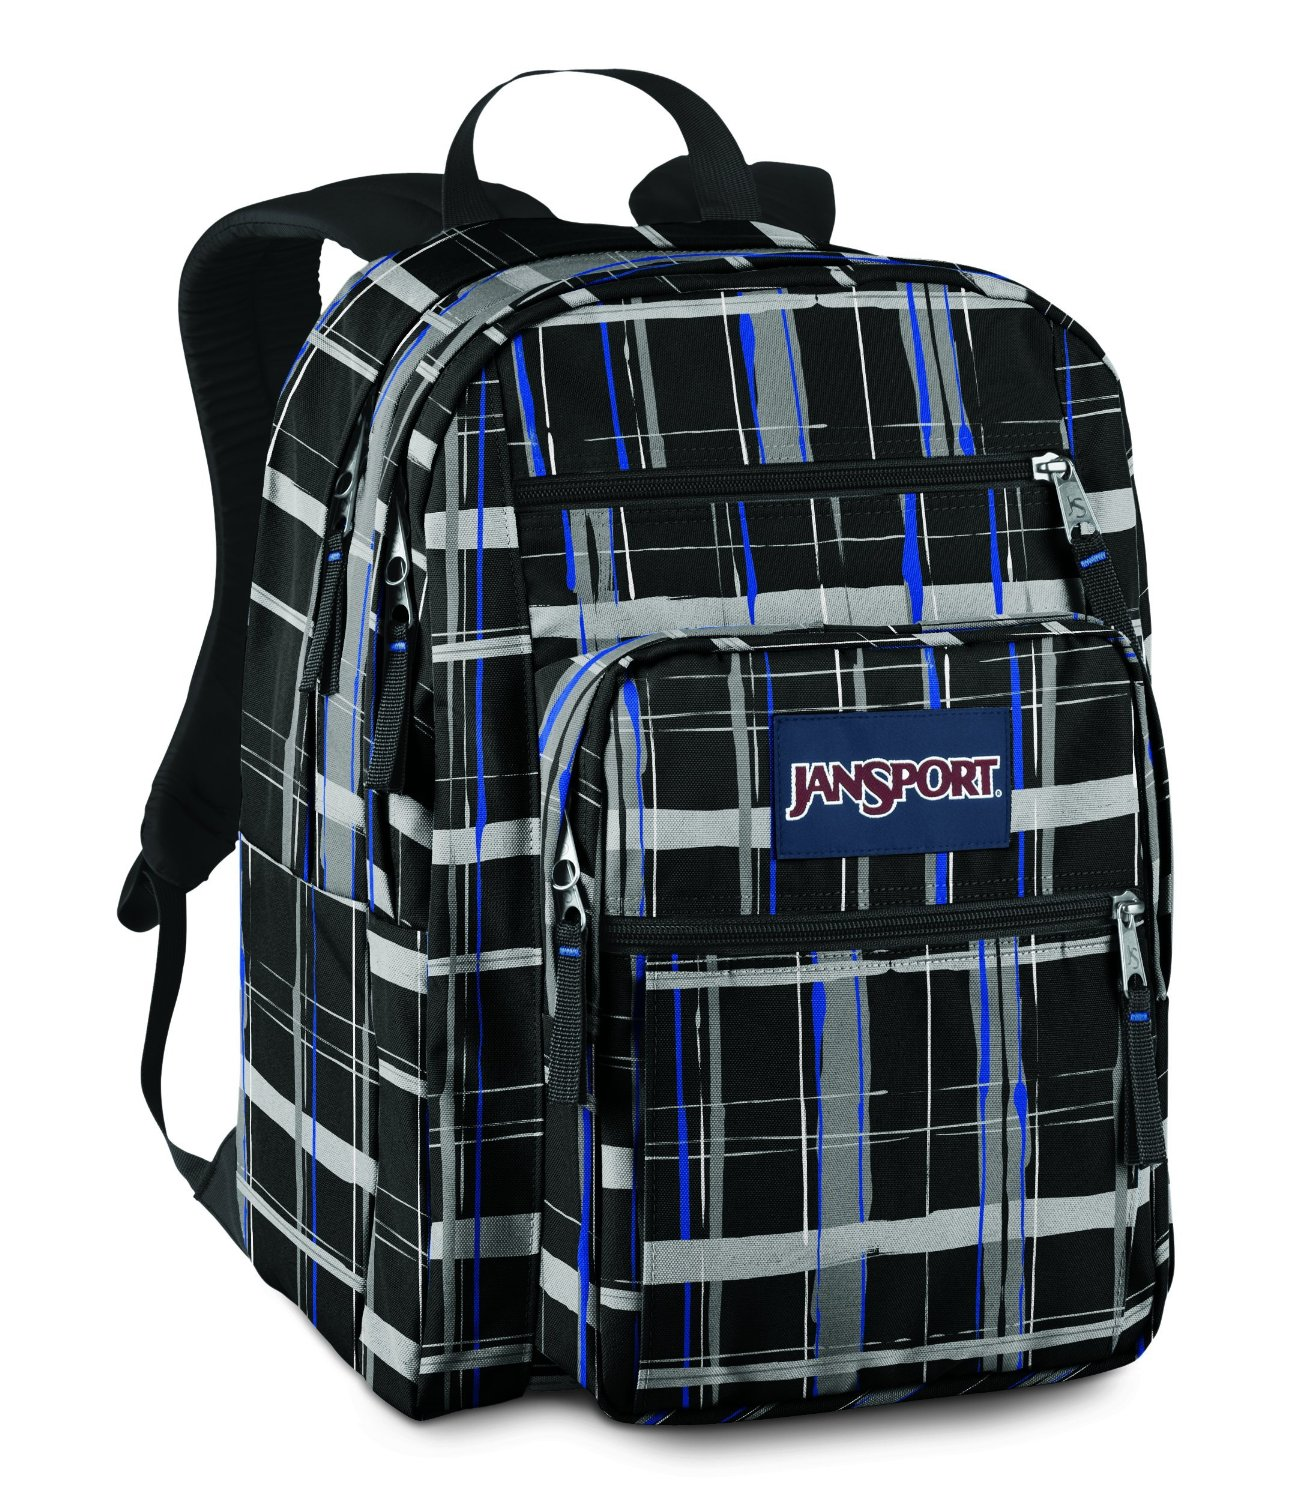 Plaid Jansport Backpack SezvRha4